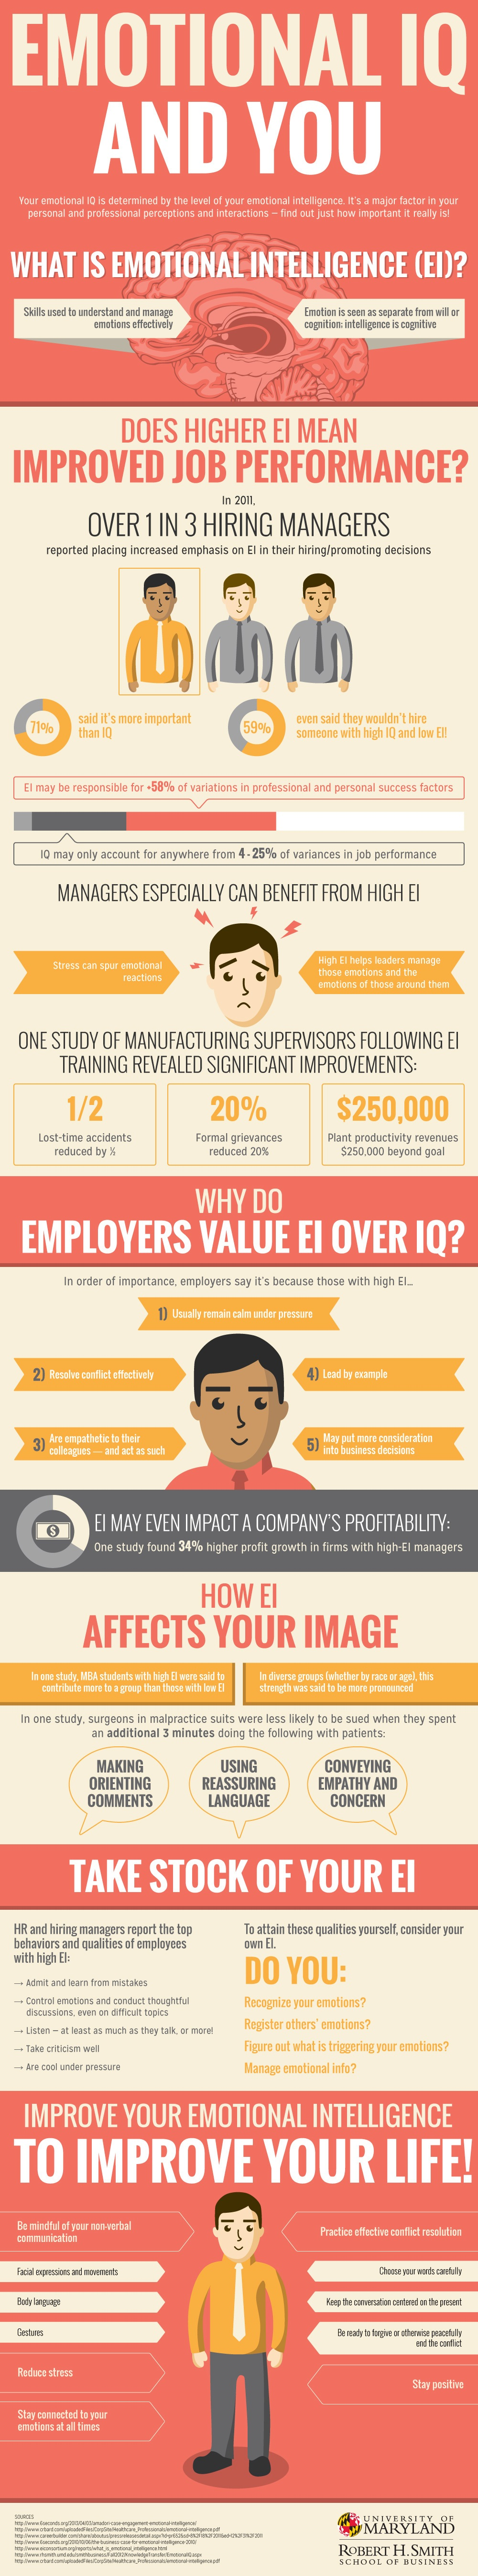 The importance of Emotional Intelligence infographic